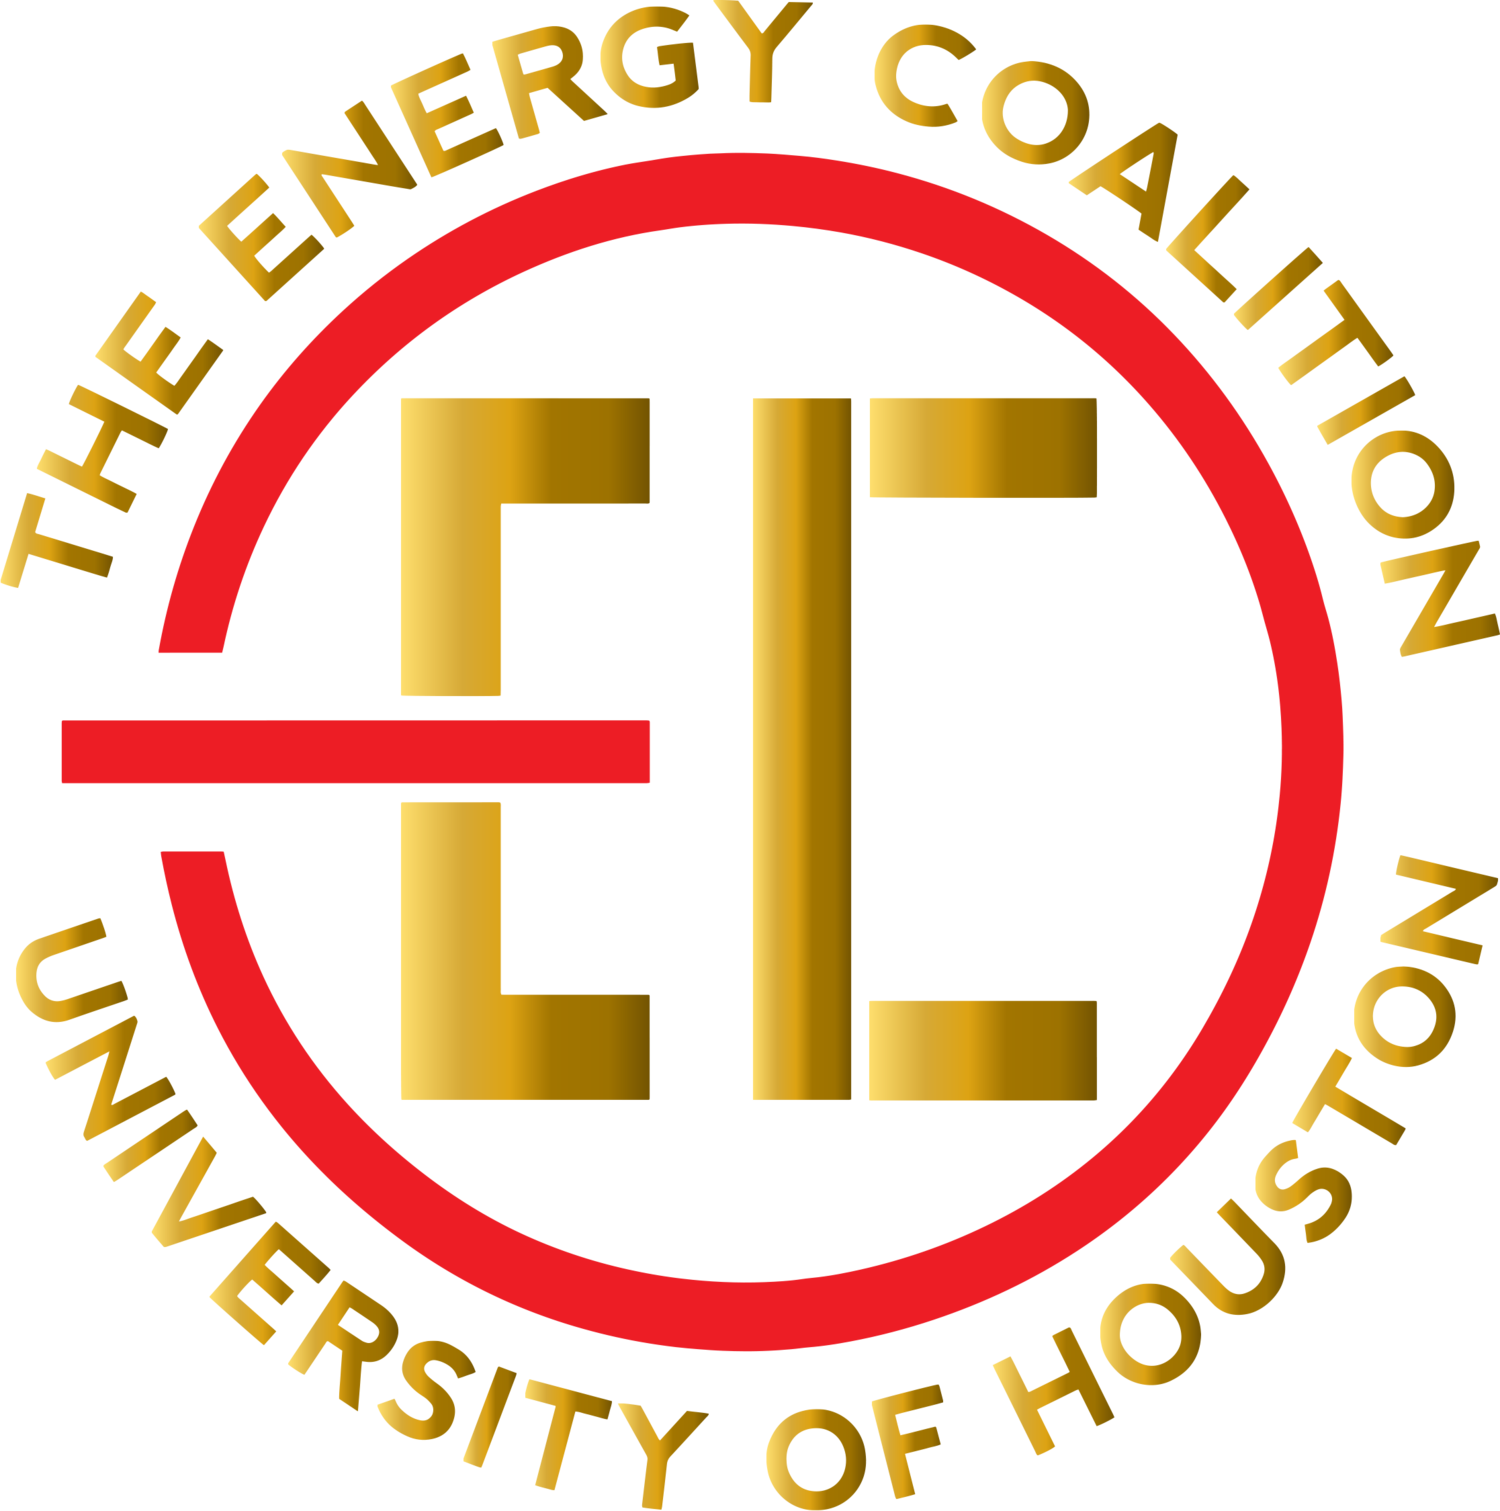 ENERGY COALITION